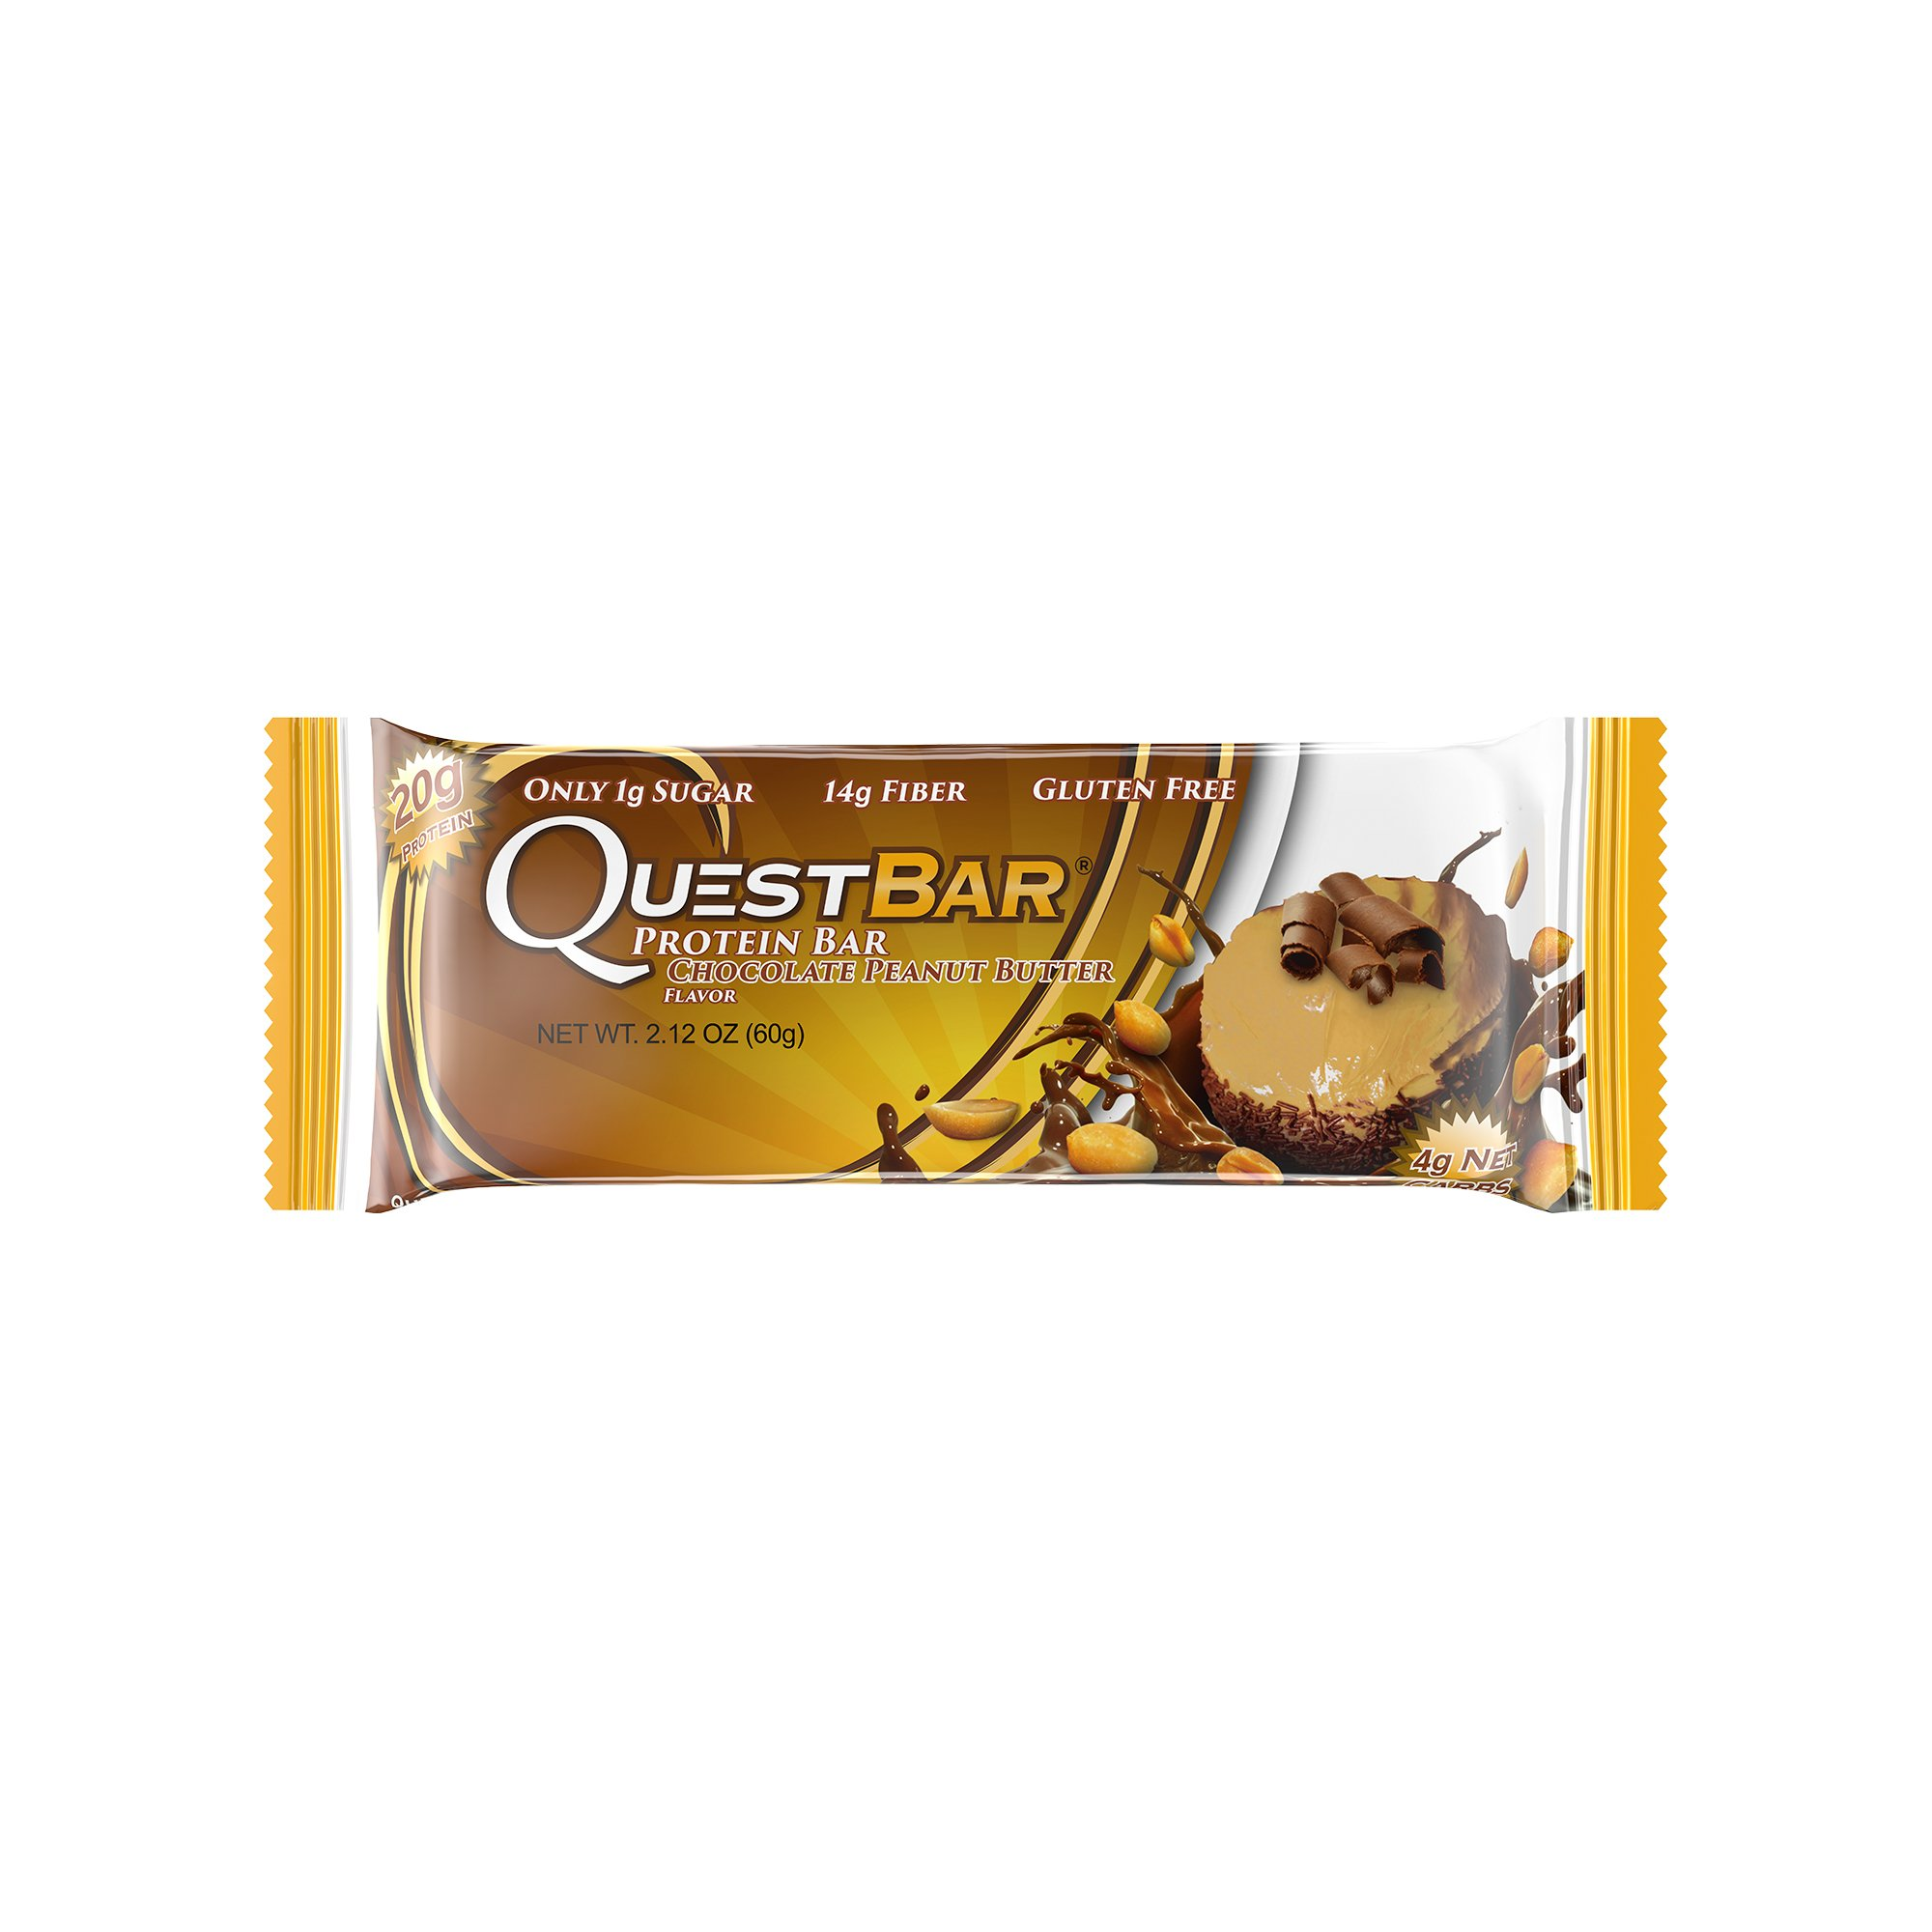 Quest Nutrition Protein Bar, Chocolate Peanut Butter, 20g Protein, 4g Net Carbs, 170 Cals, High Protein Bars, Low Carb Bars, Gluten Free, Soy Free, 2.1 oz Bar, 12 Count